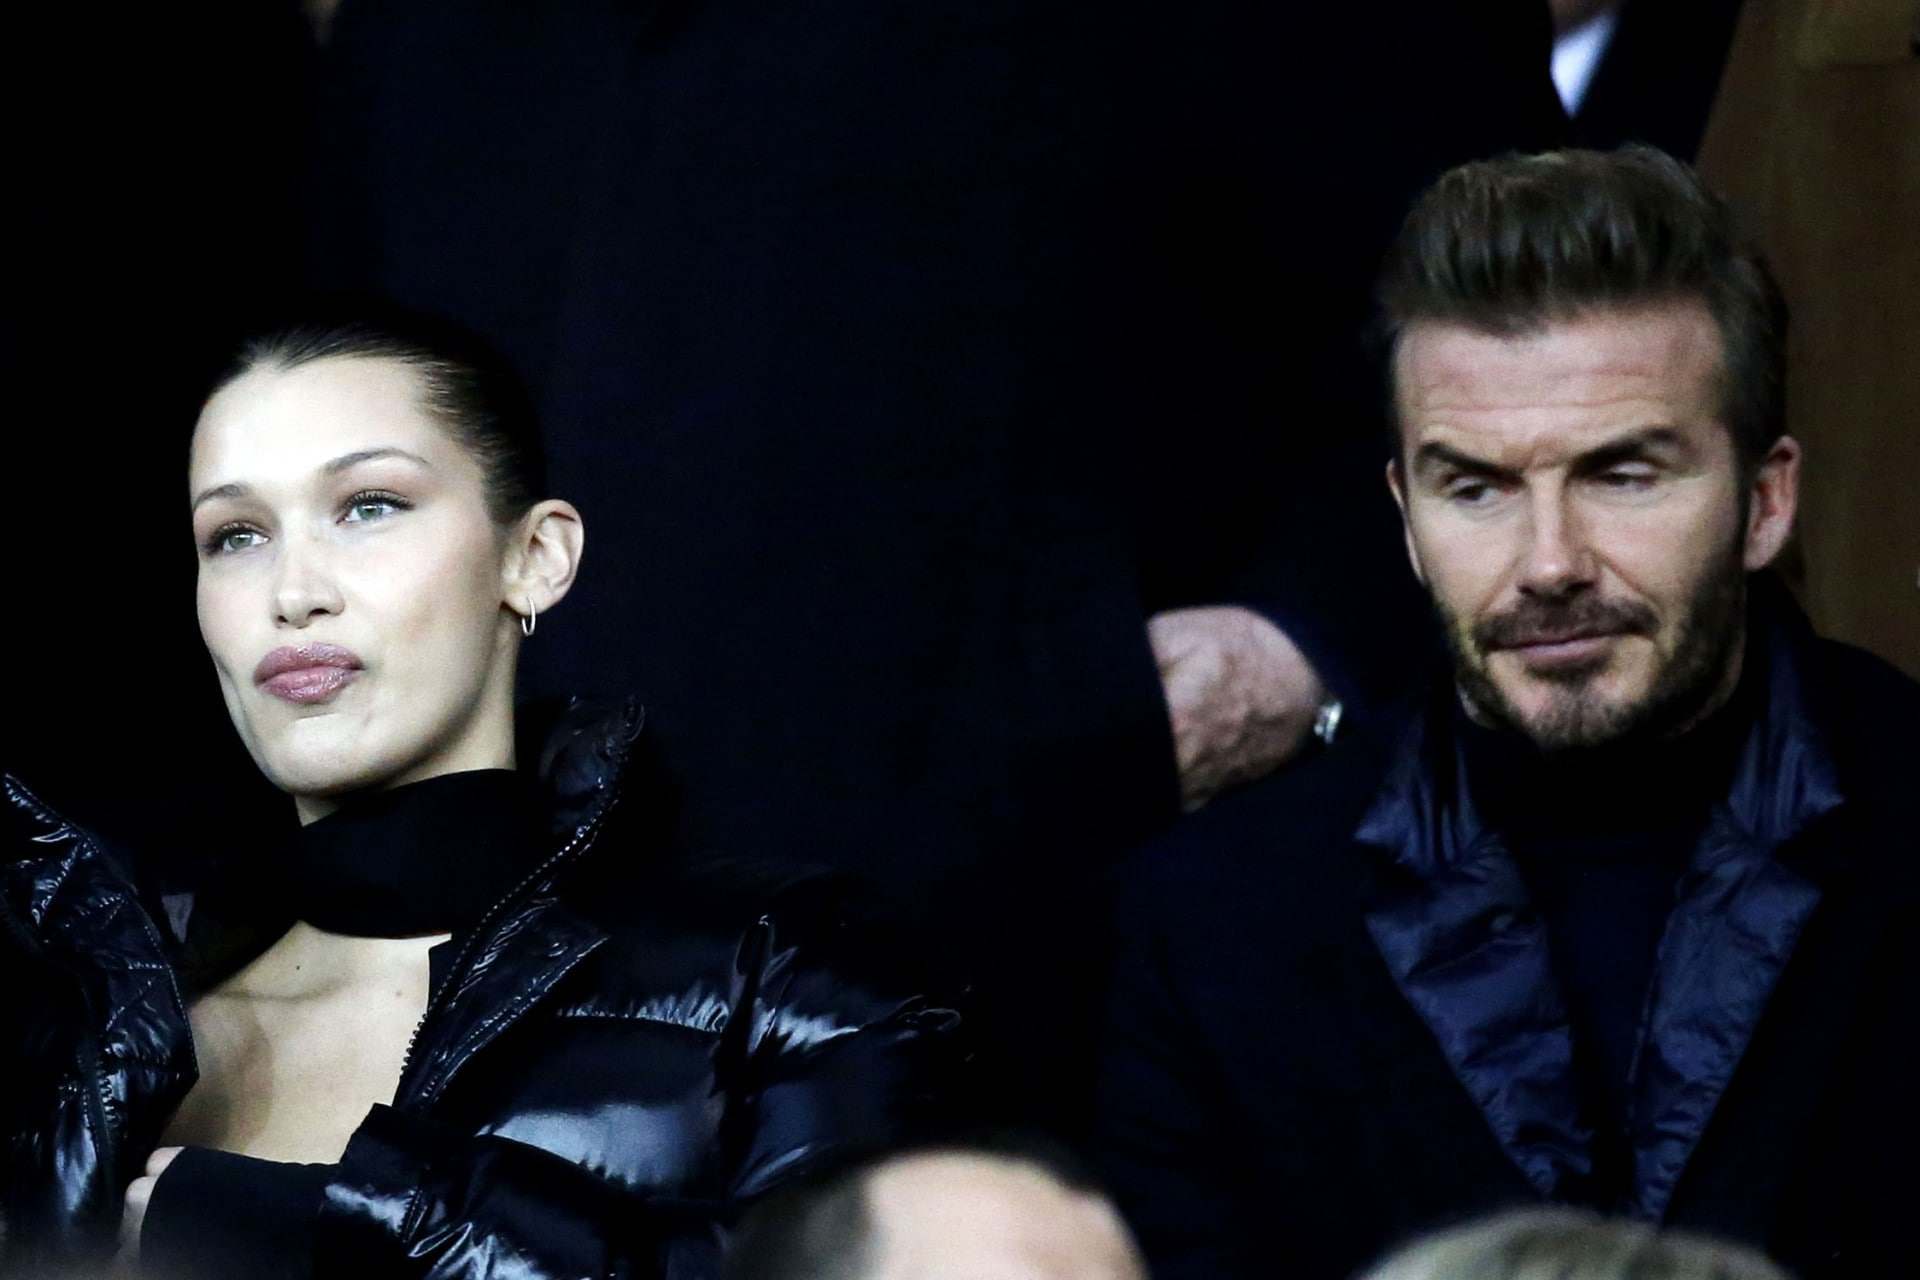 Bella Hadid just enjoyed a soccer game with her new best friend David Beckham